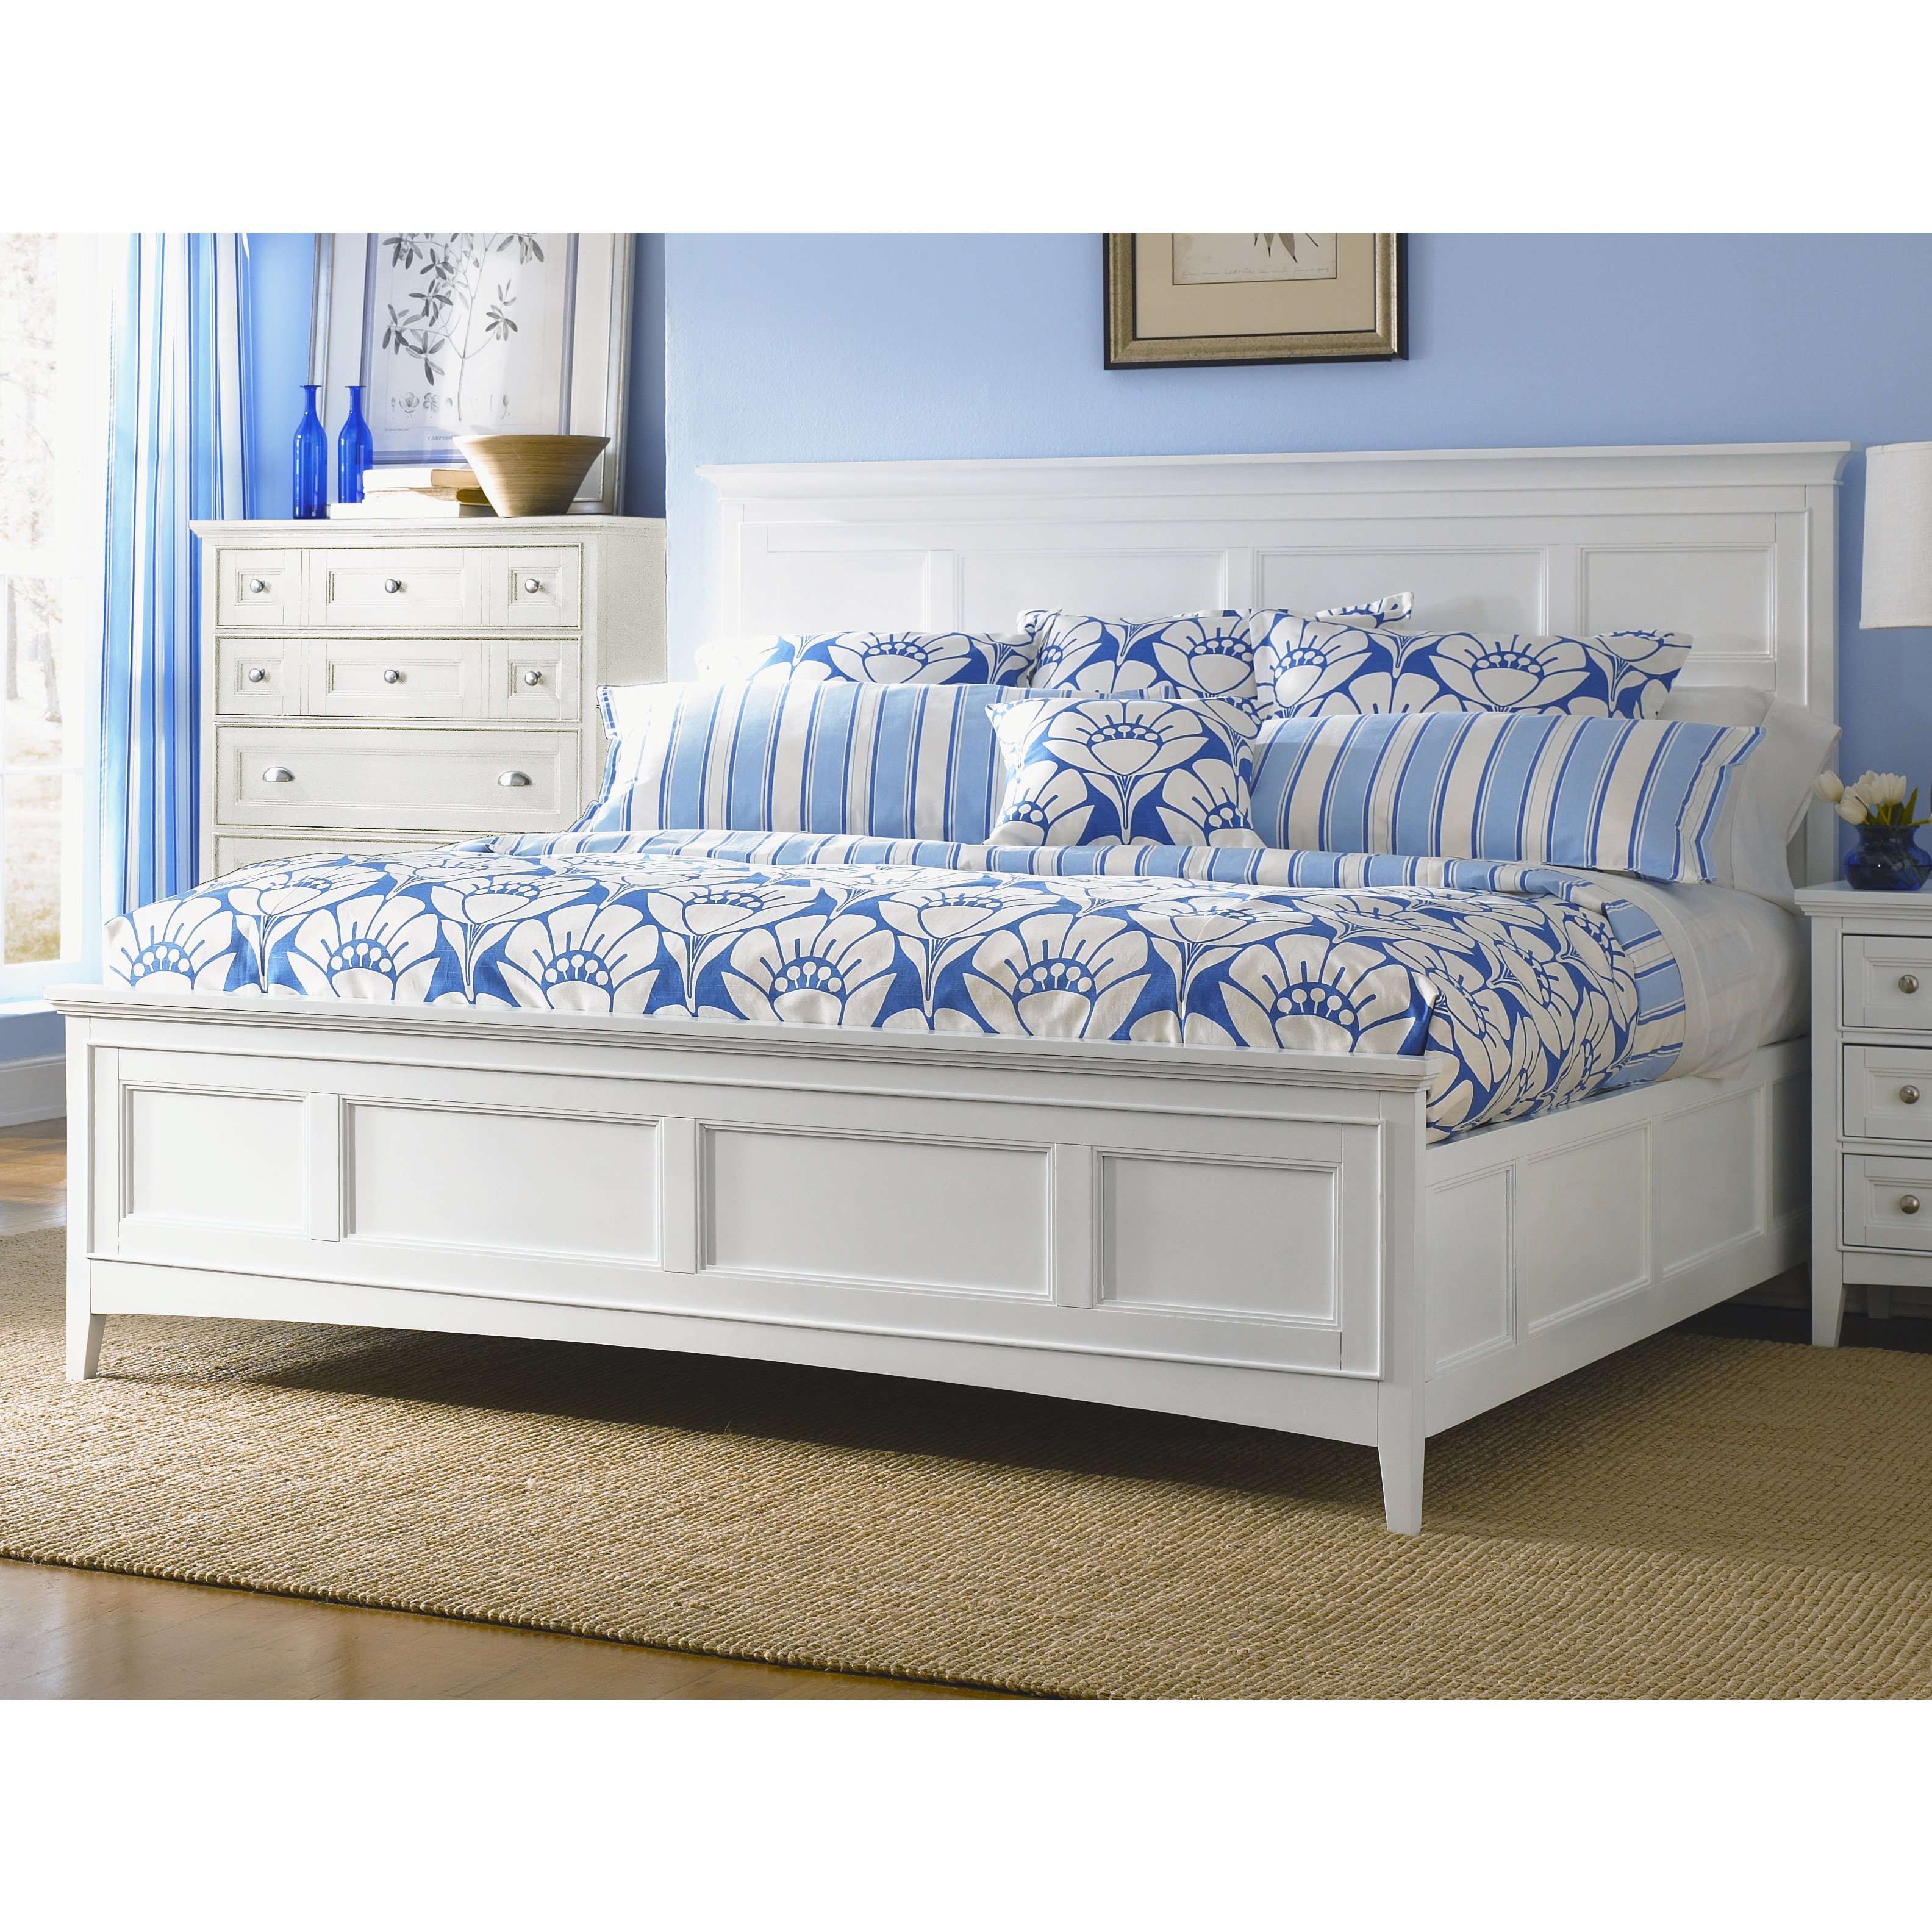 Shop Havenside Home Traverse Panel Bed With Storage Free